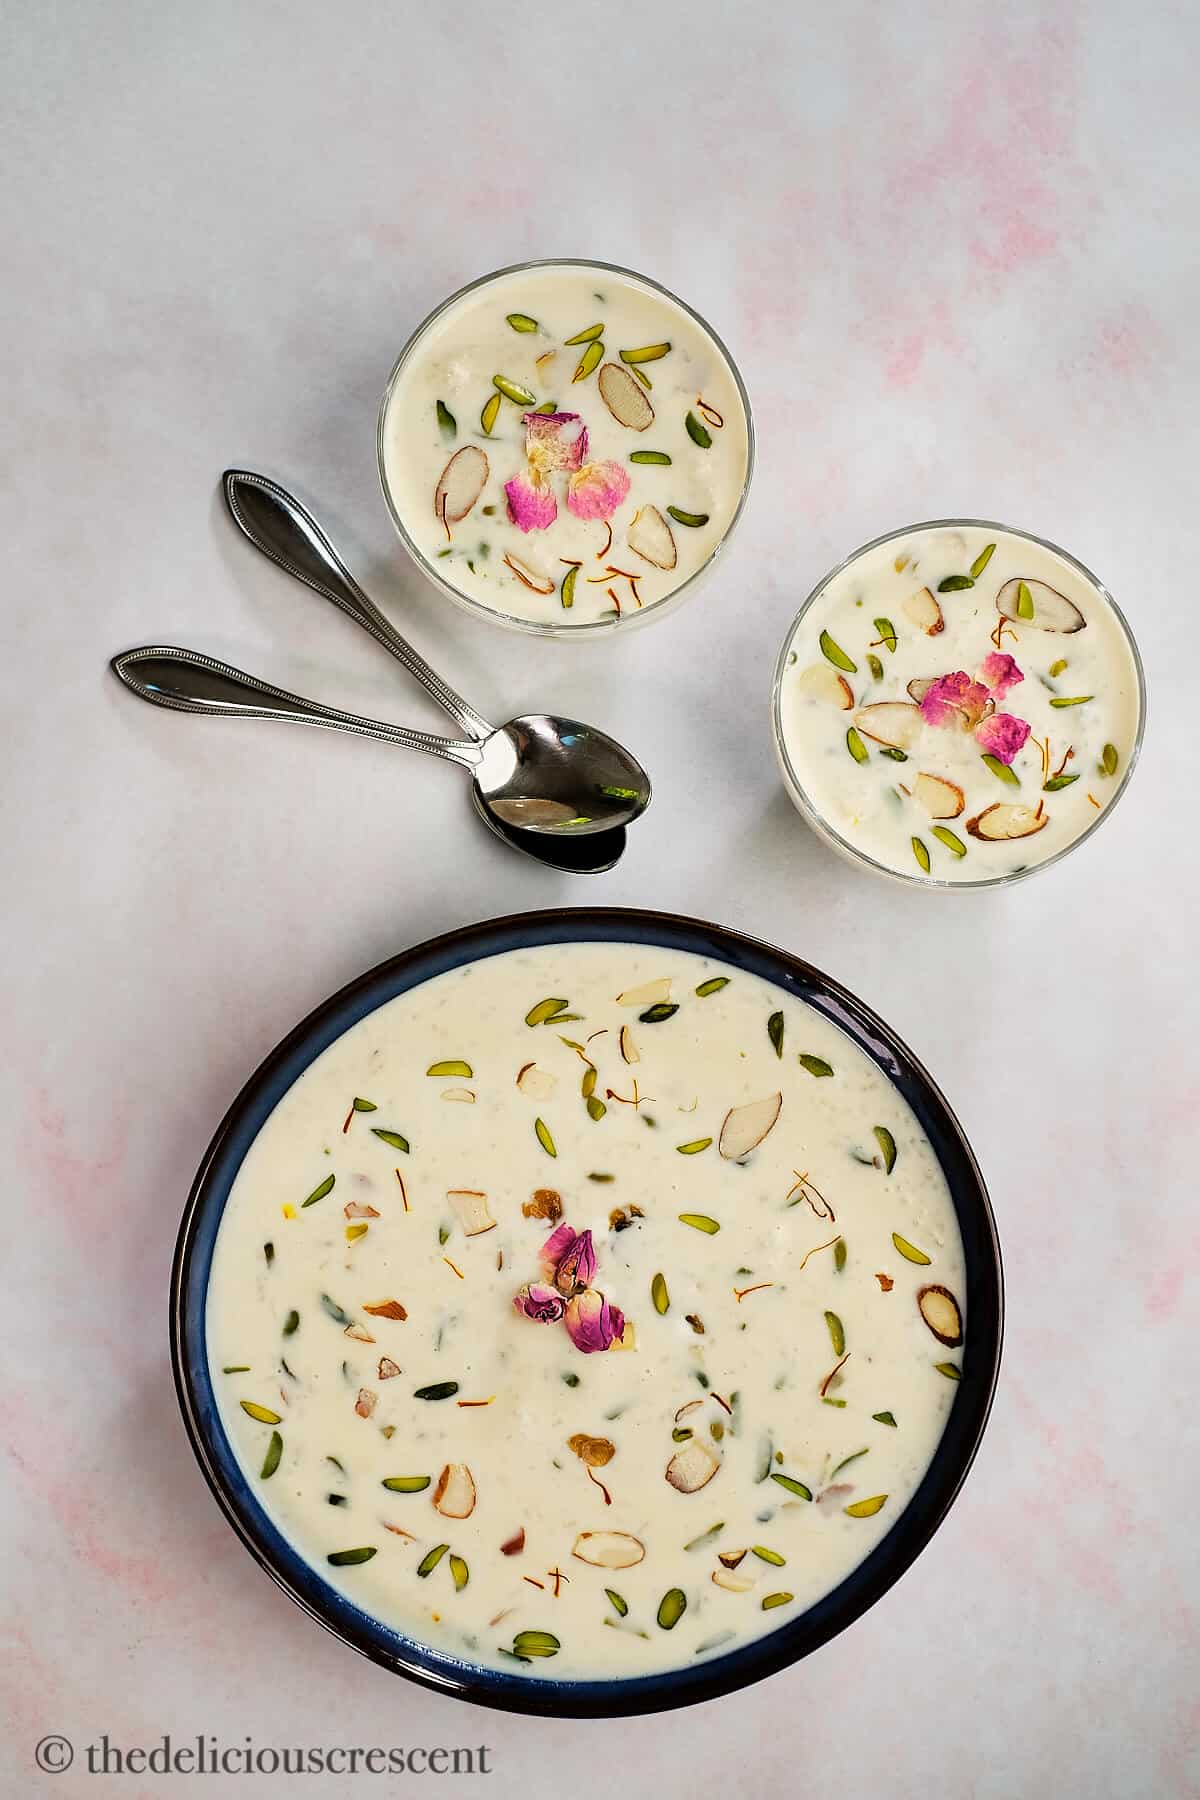 Kheer in a large serving bowl and two small bowls.